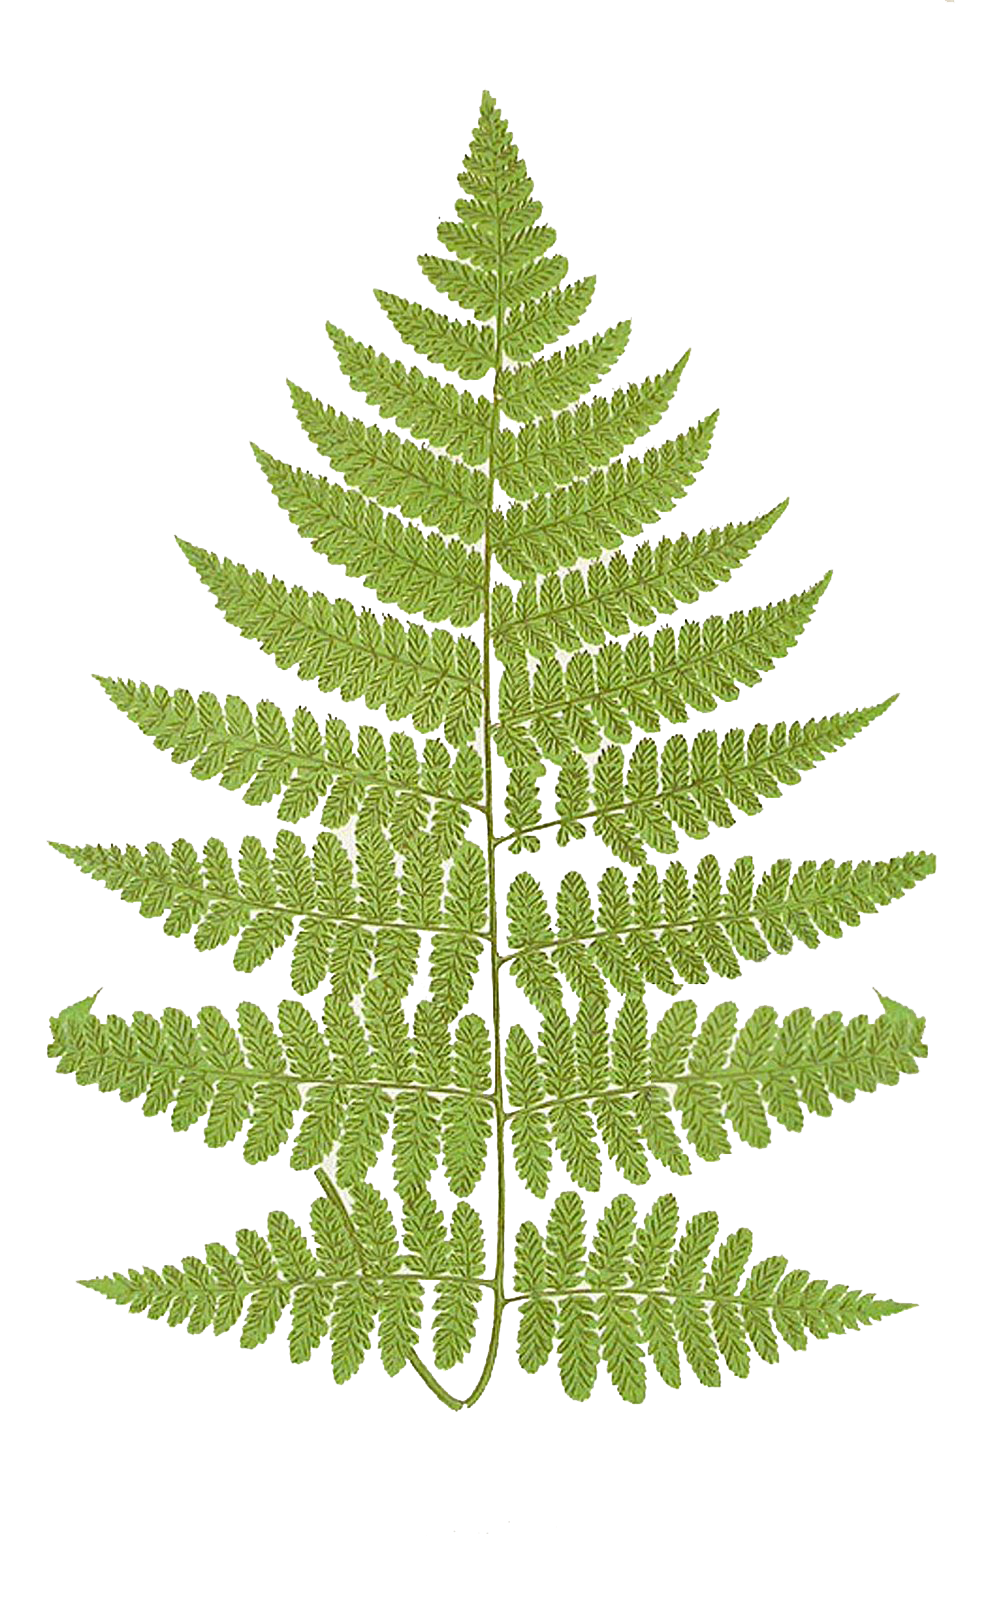 Leaf clipart fern. Leaping frog designs frond